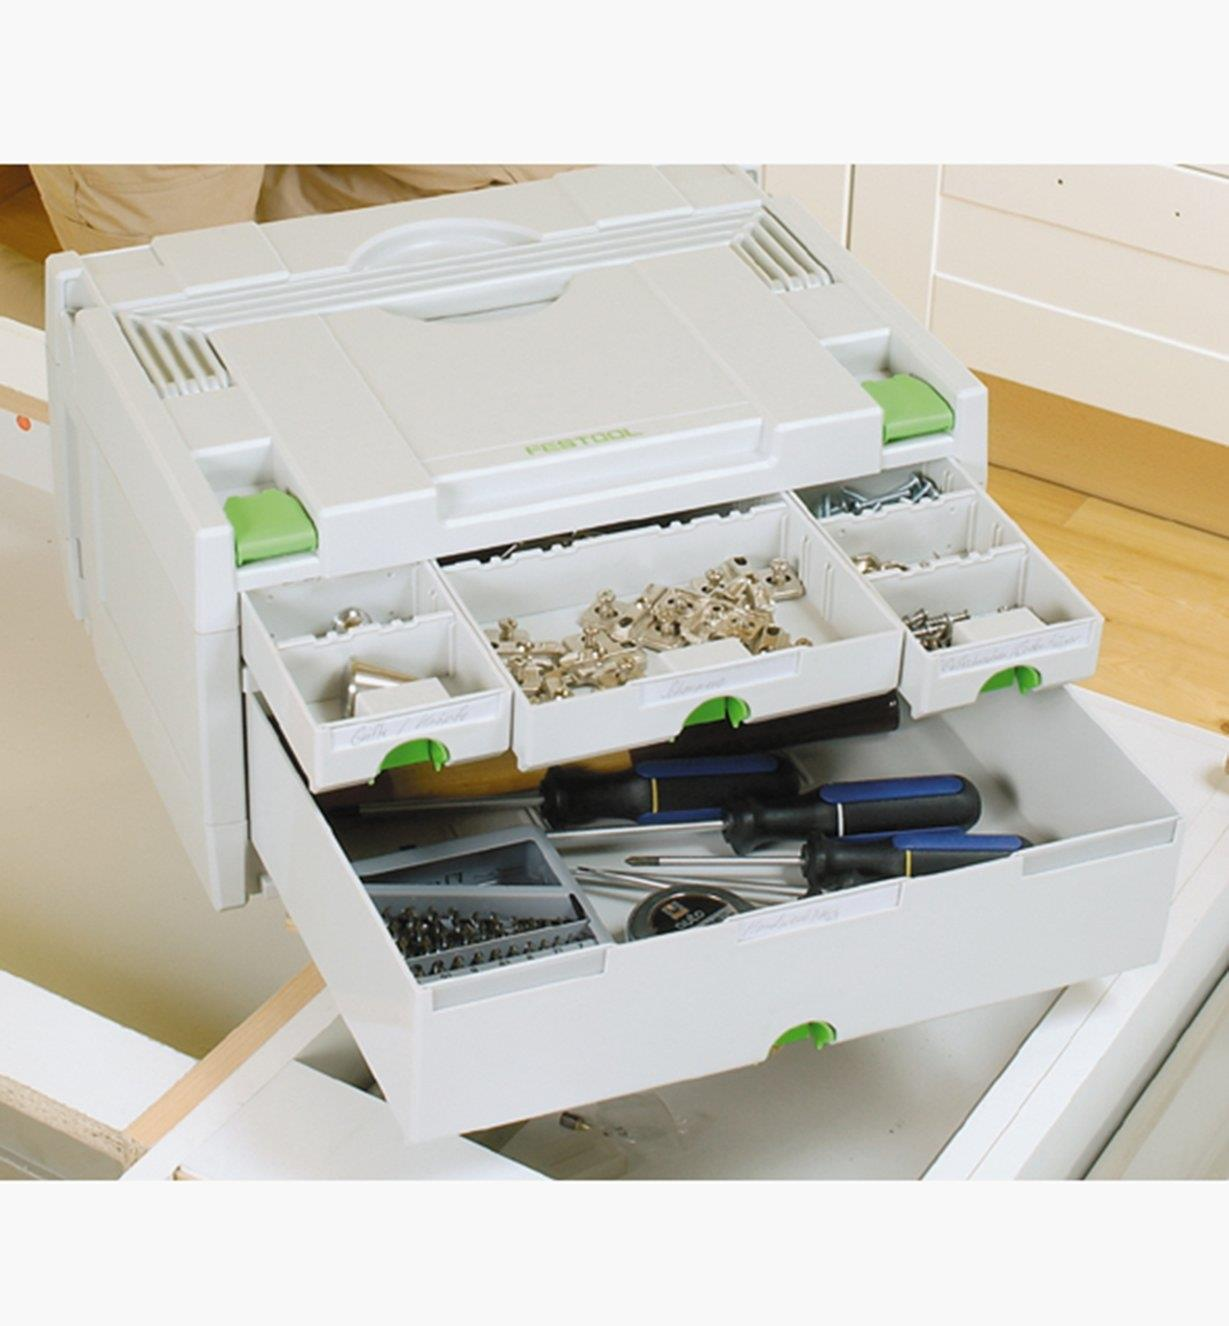 A four-drawer Sortainer with all drawers pulled open to show an organized assortment of hardware and tools